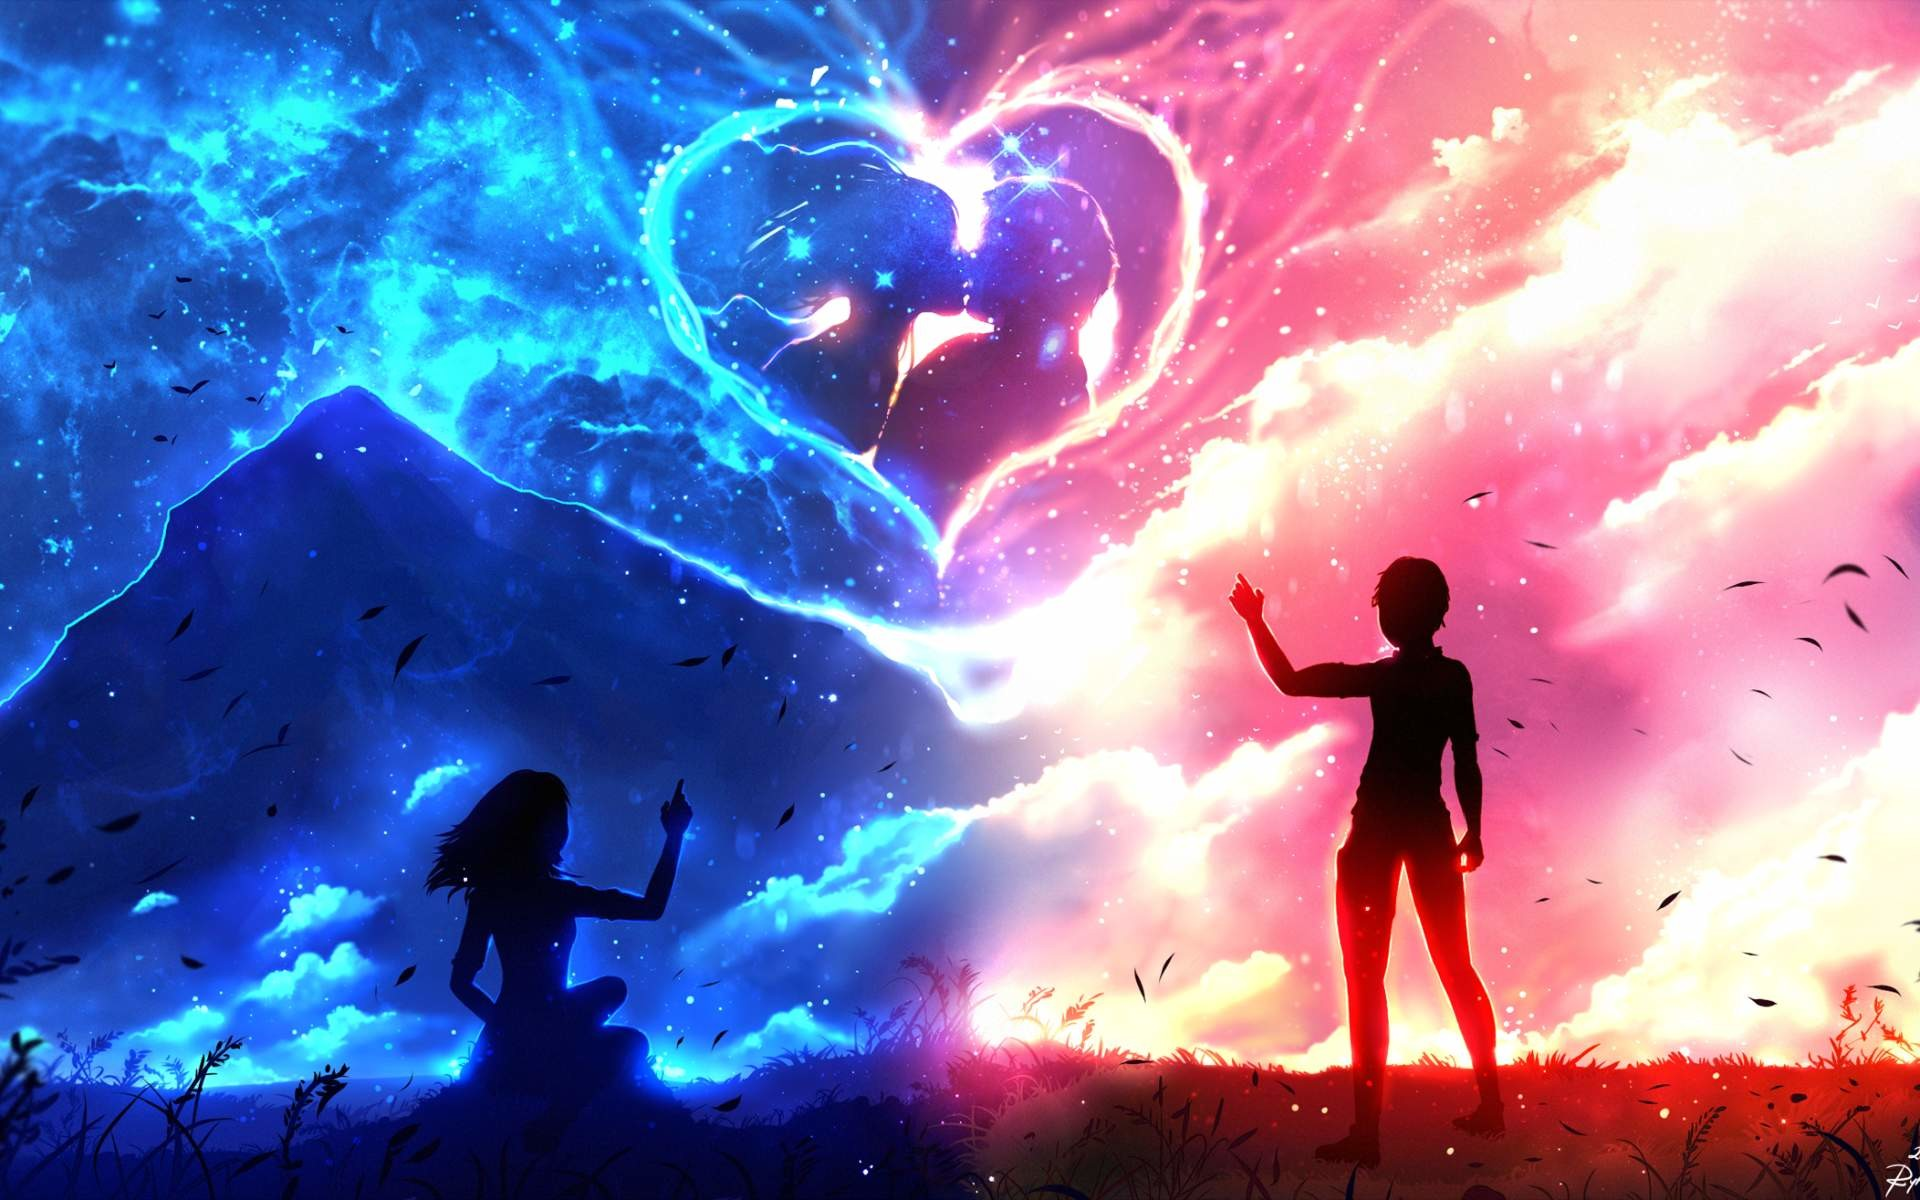 Love Couple Wallpaper Hd 1080p Free Download 53 Find: Couples Anime Wallpapers ·① WallpaperTag